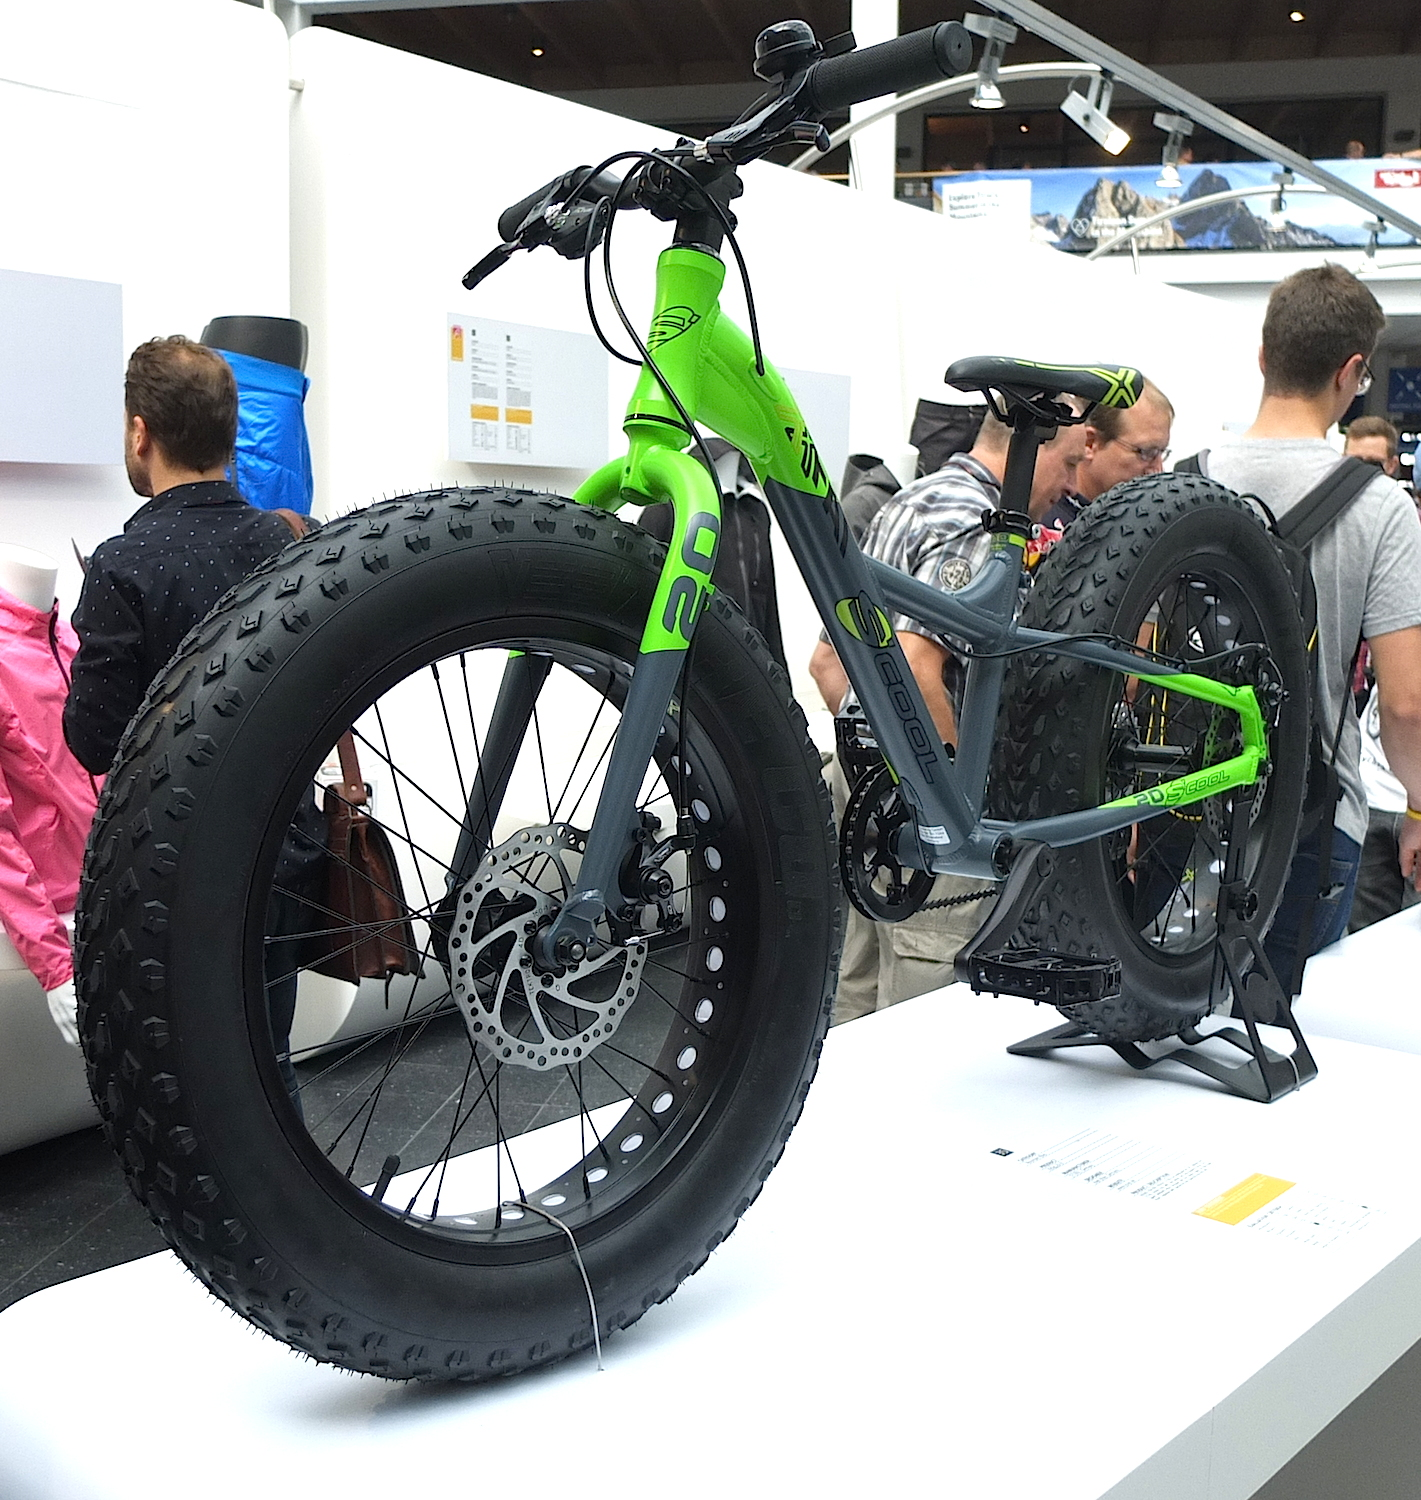 Surly 2014 Moonlander Fat Bike | All Terrain Cycles |Fat Bike